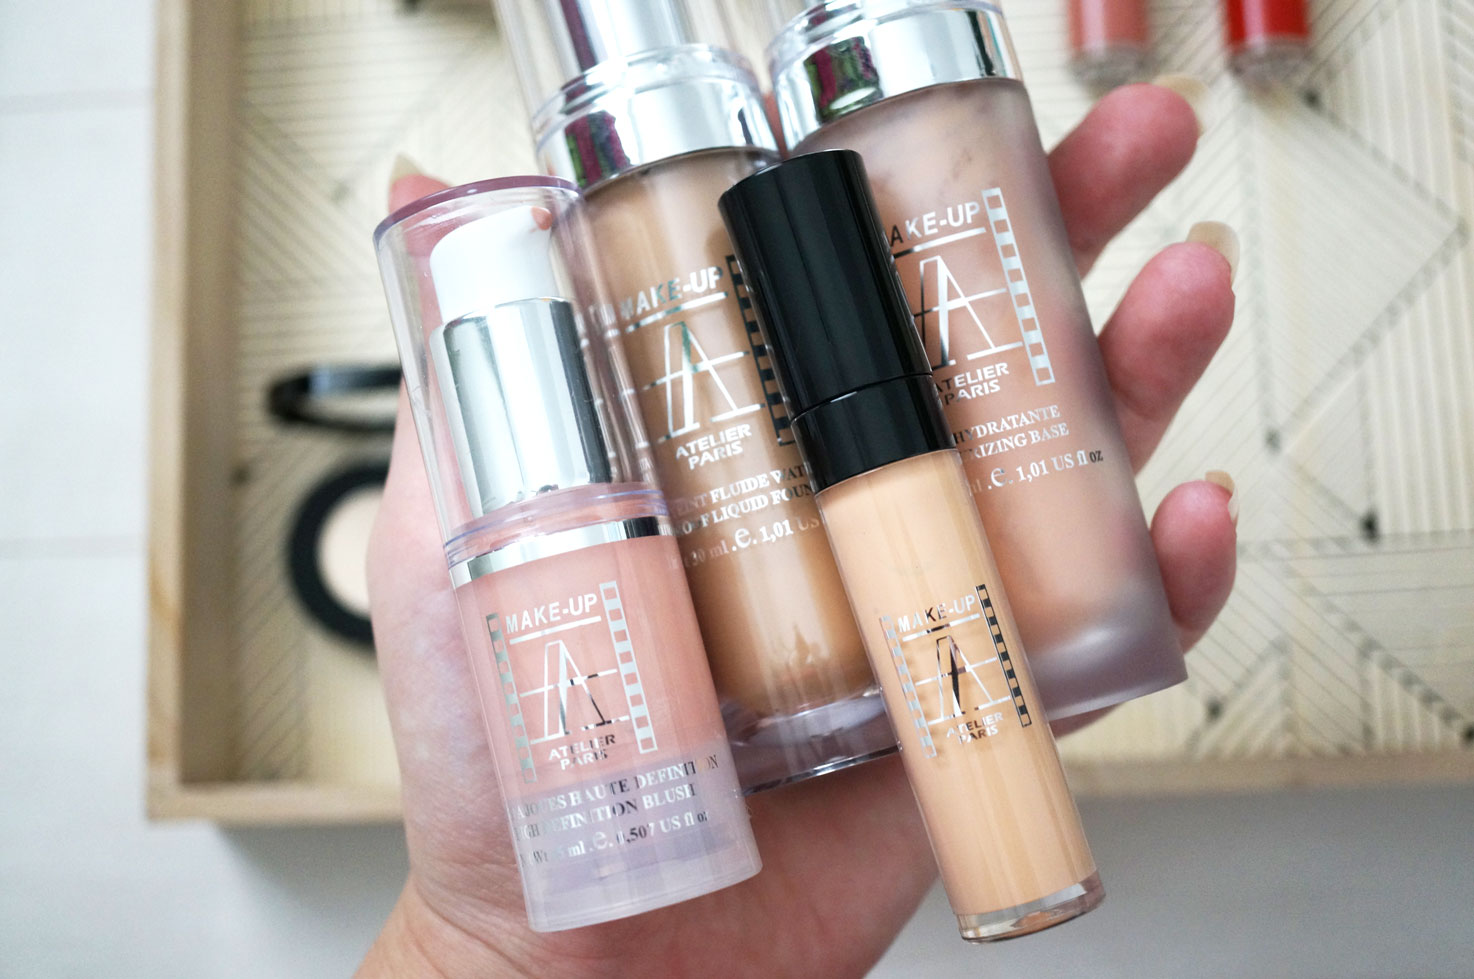 Makeup atelier waterproof foundation review